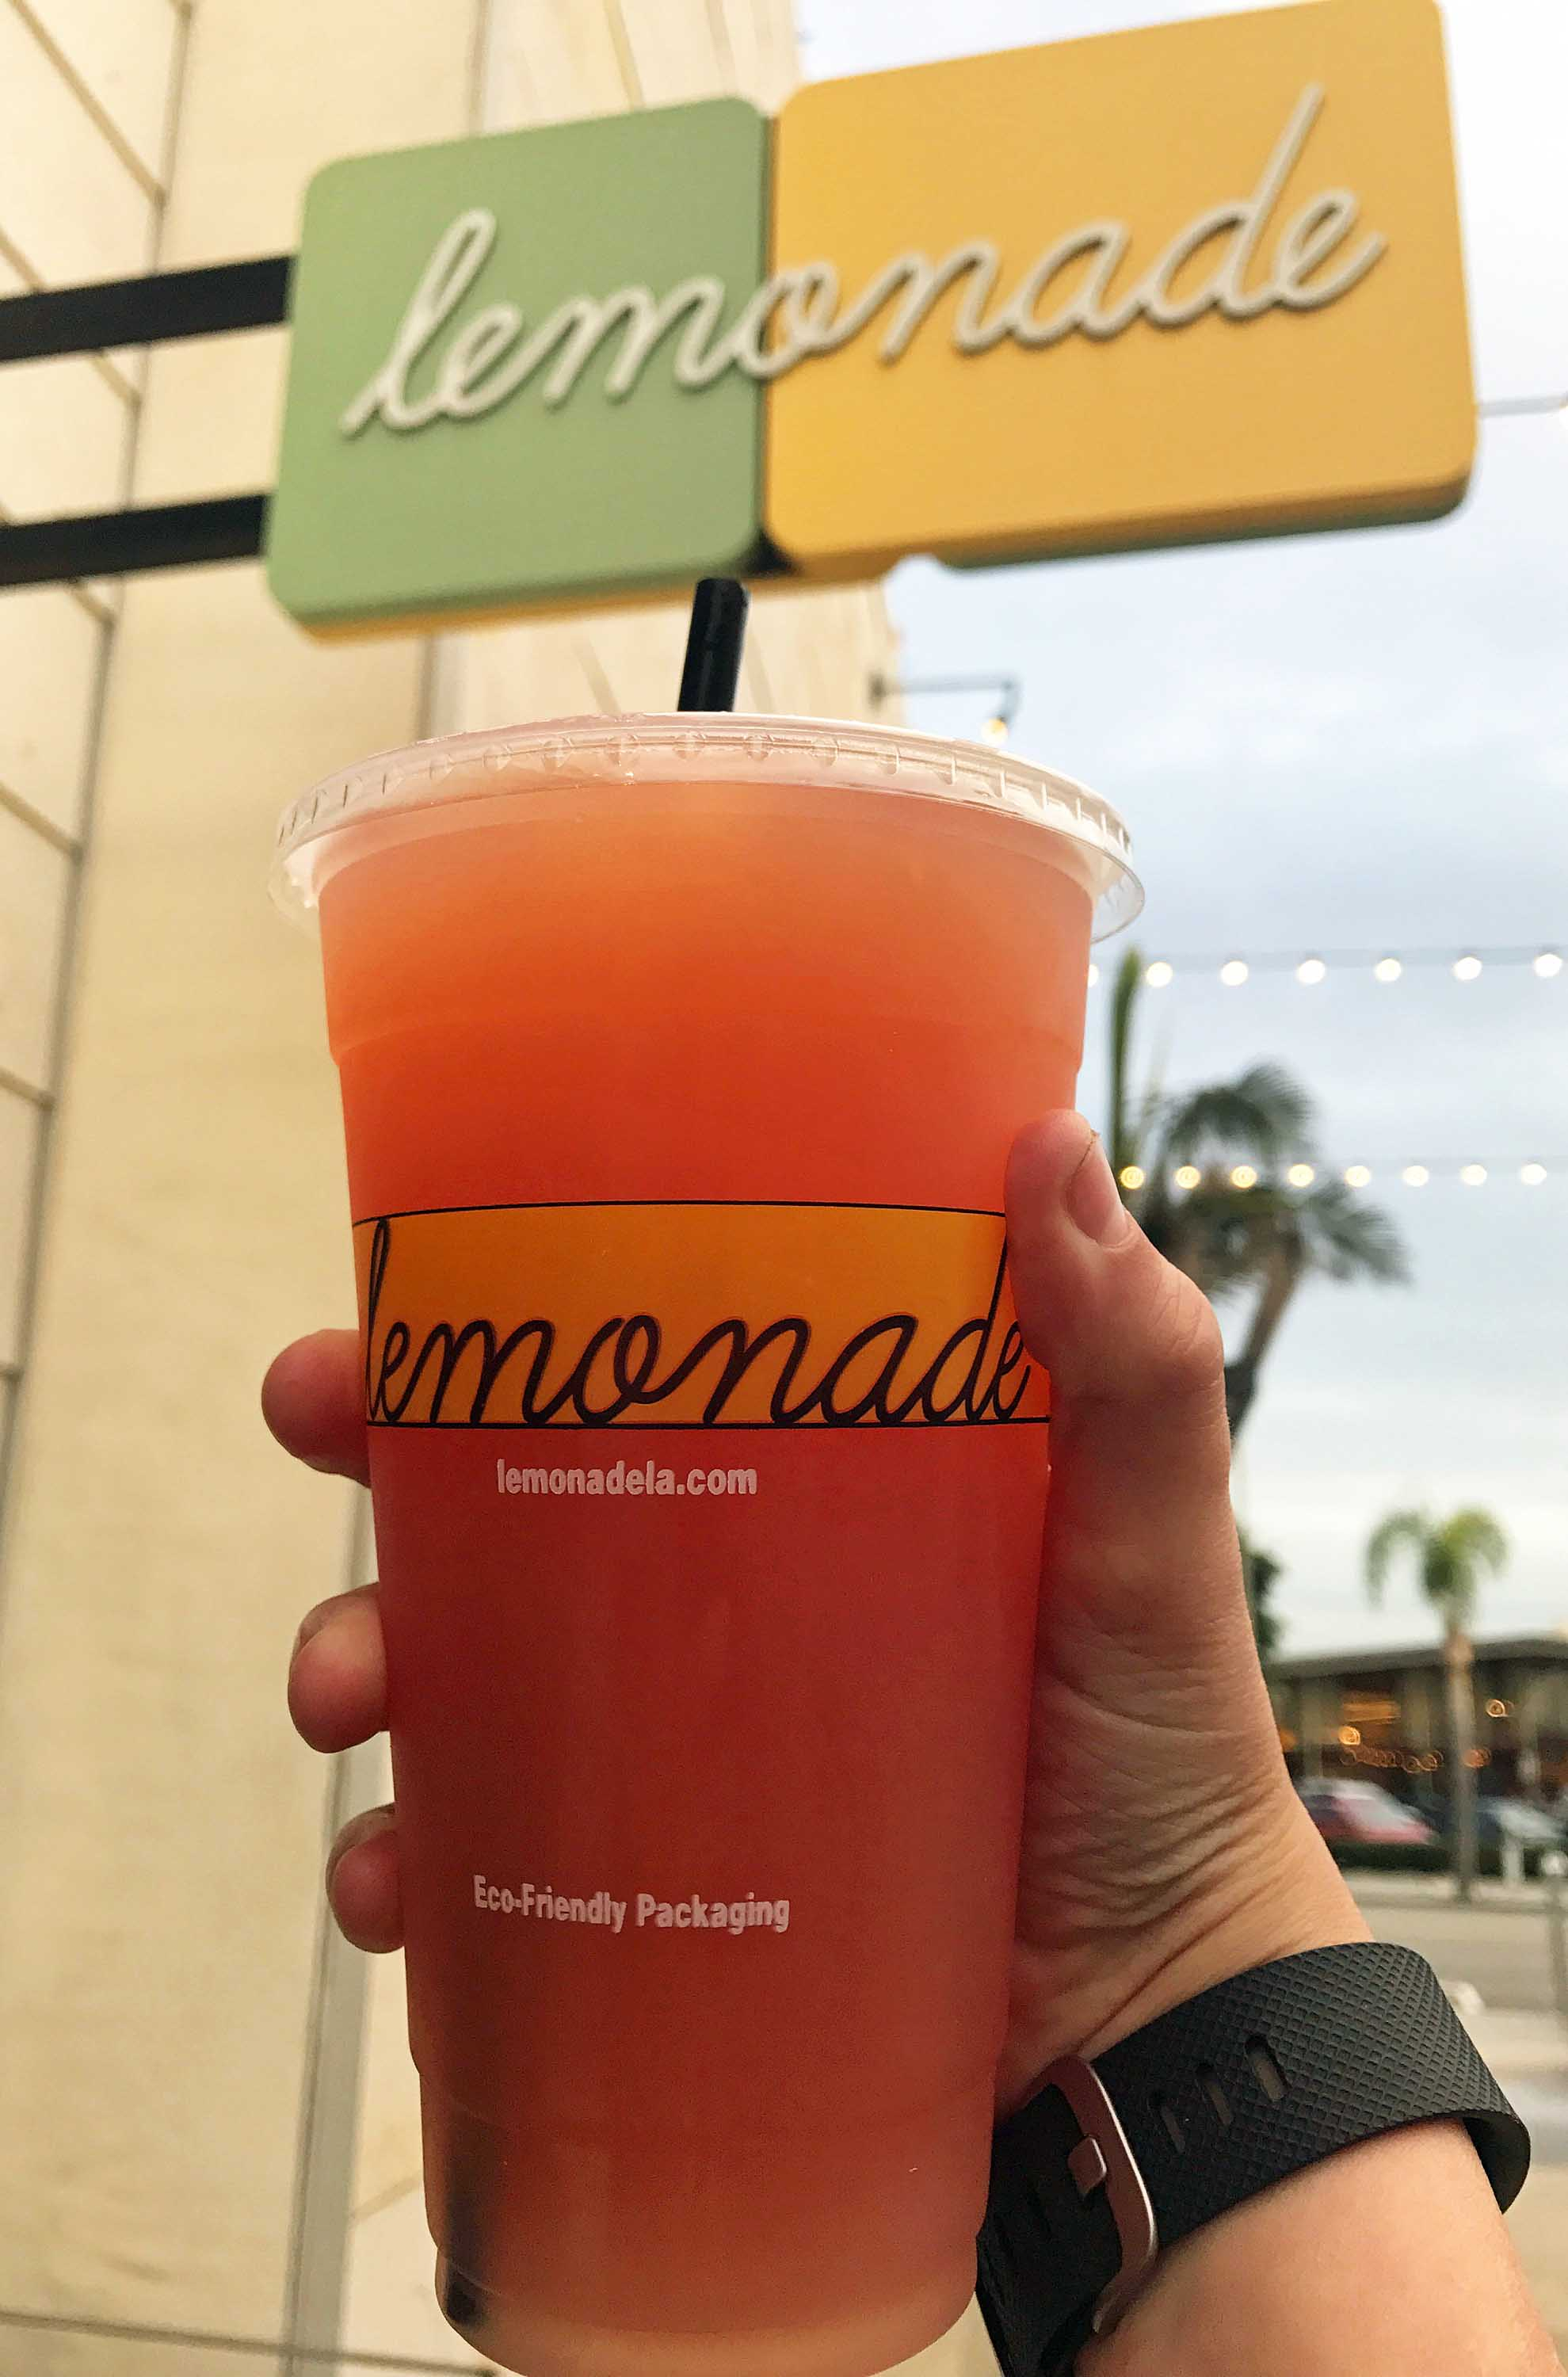 Best Places to Eat in Orange County. The most popular restaurants, food, and dessert in California. www.modernhoney.com Lemonade restaurant in California